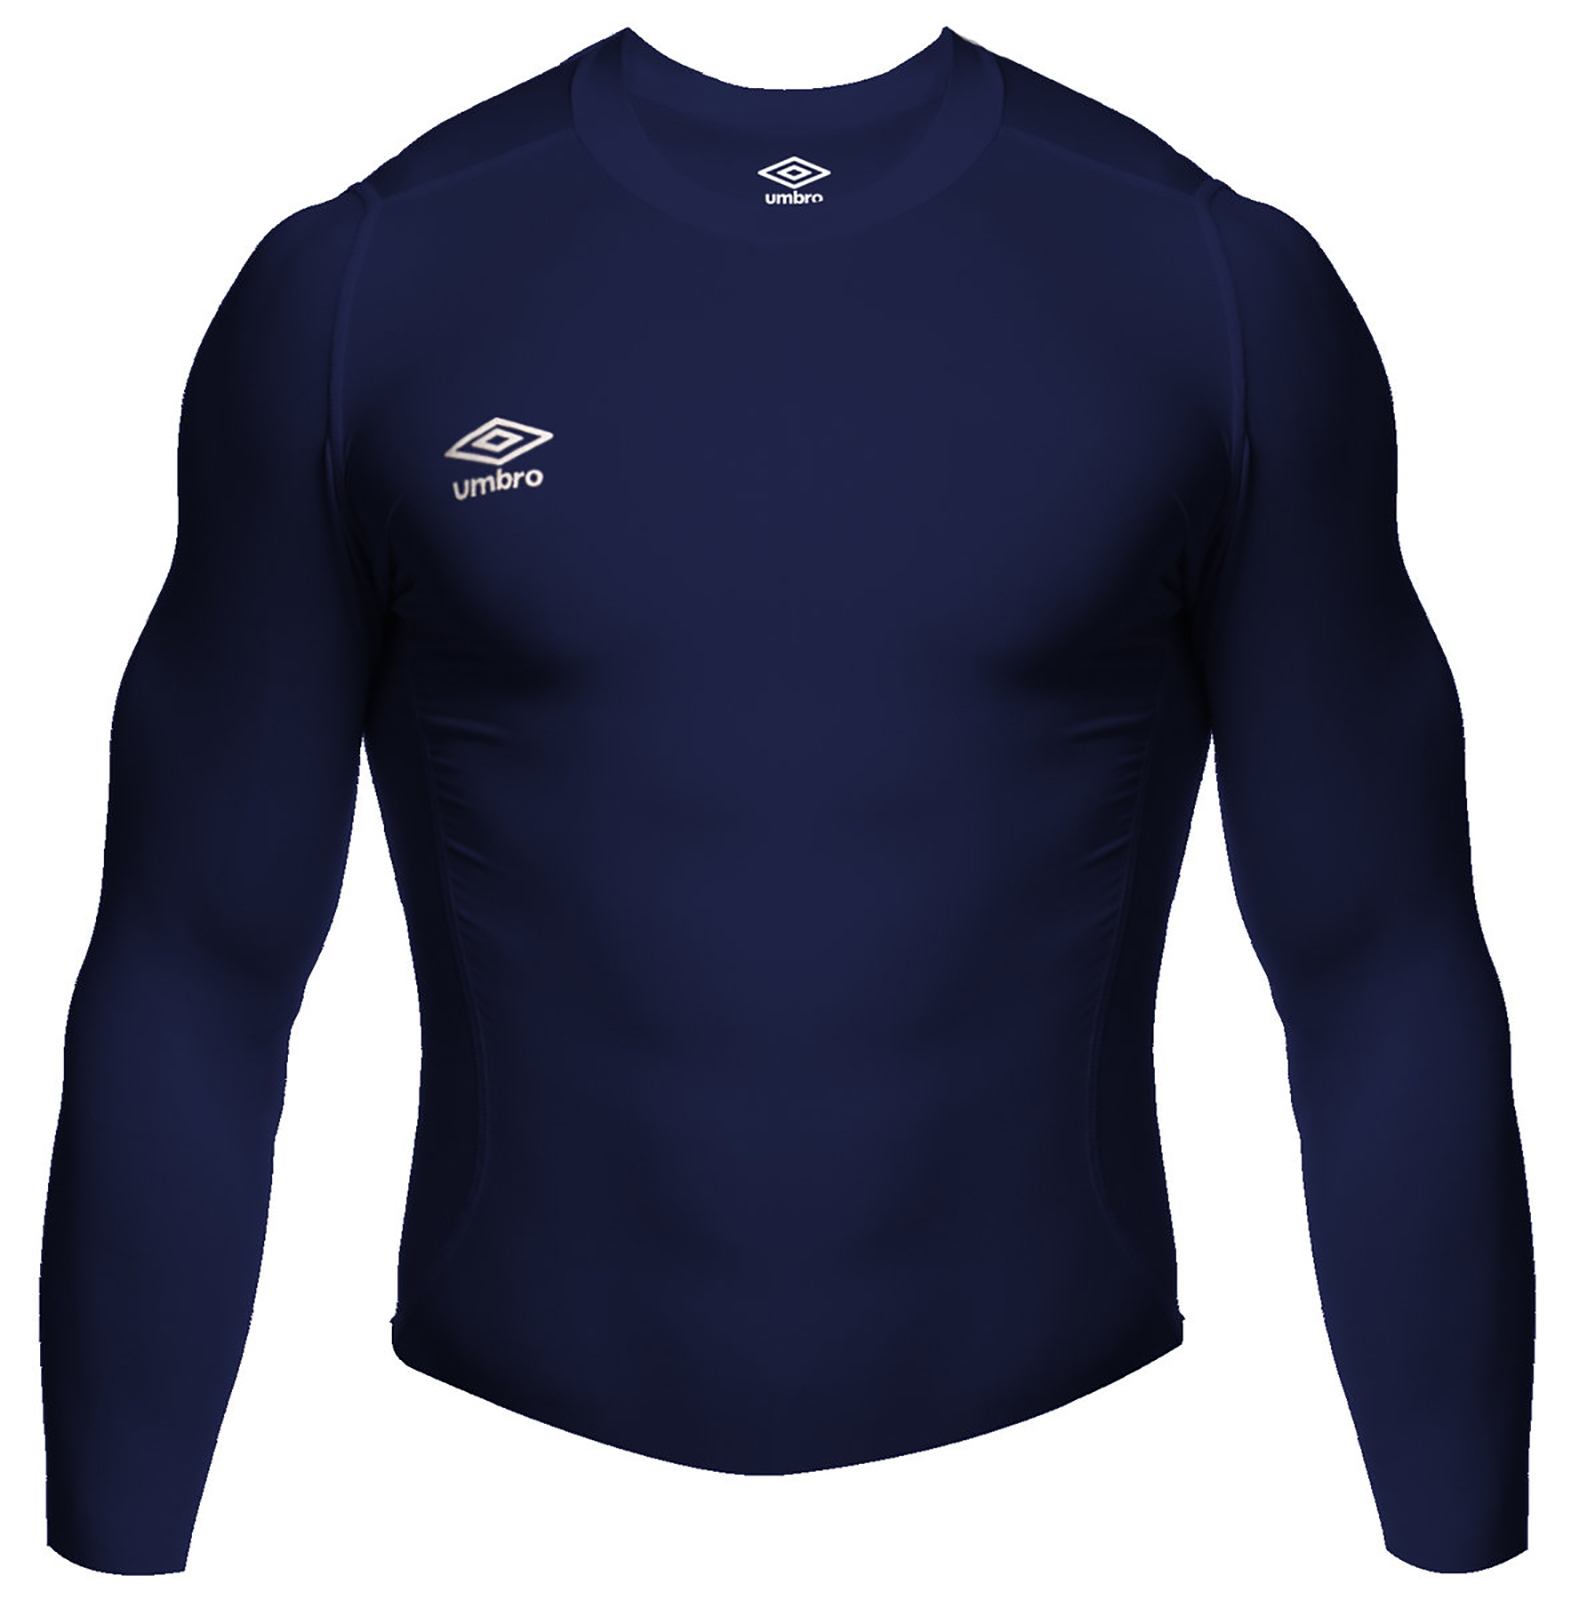 Umbro Base Layer Long Sleeve Top Mens - UM183699